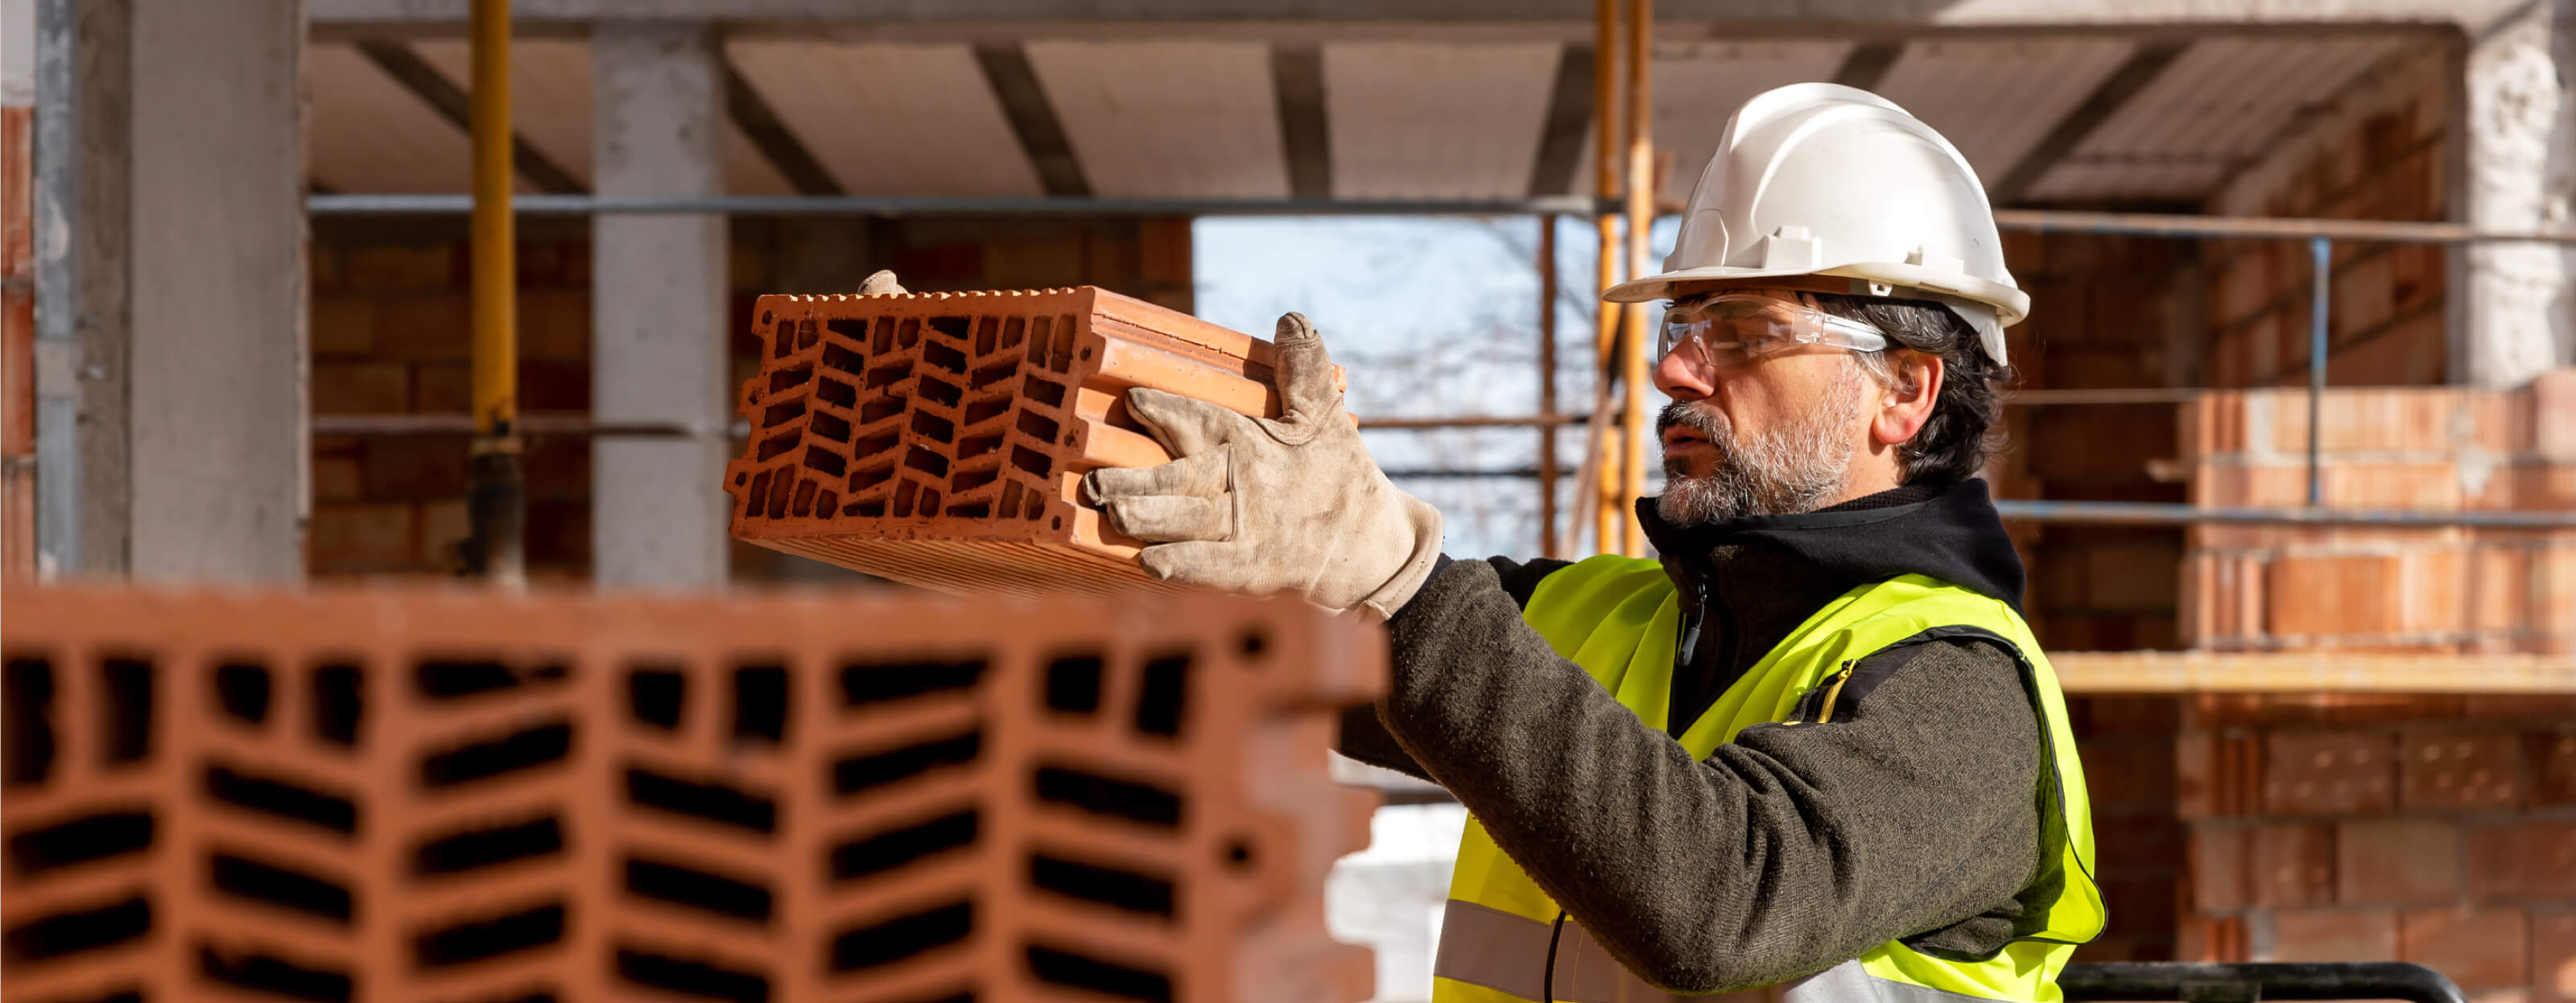 A construction worker wearing a hard hat moving heavy blocks